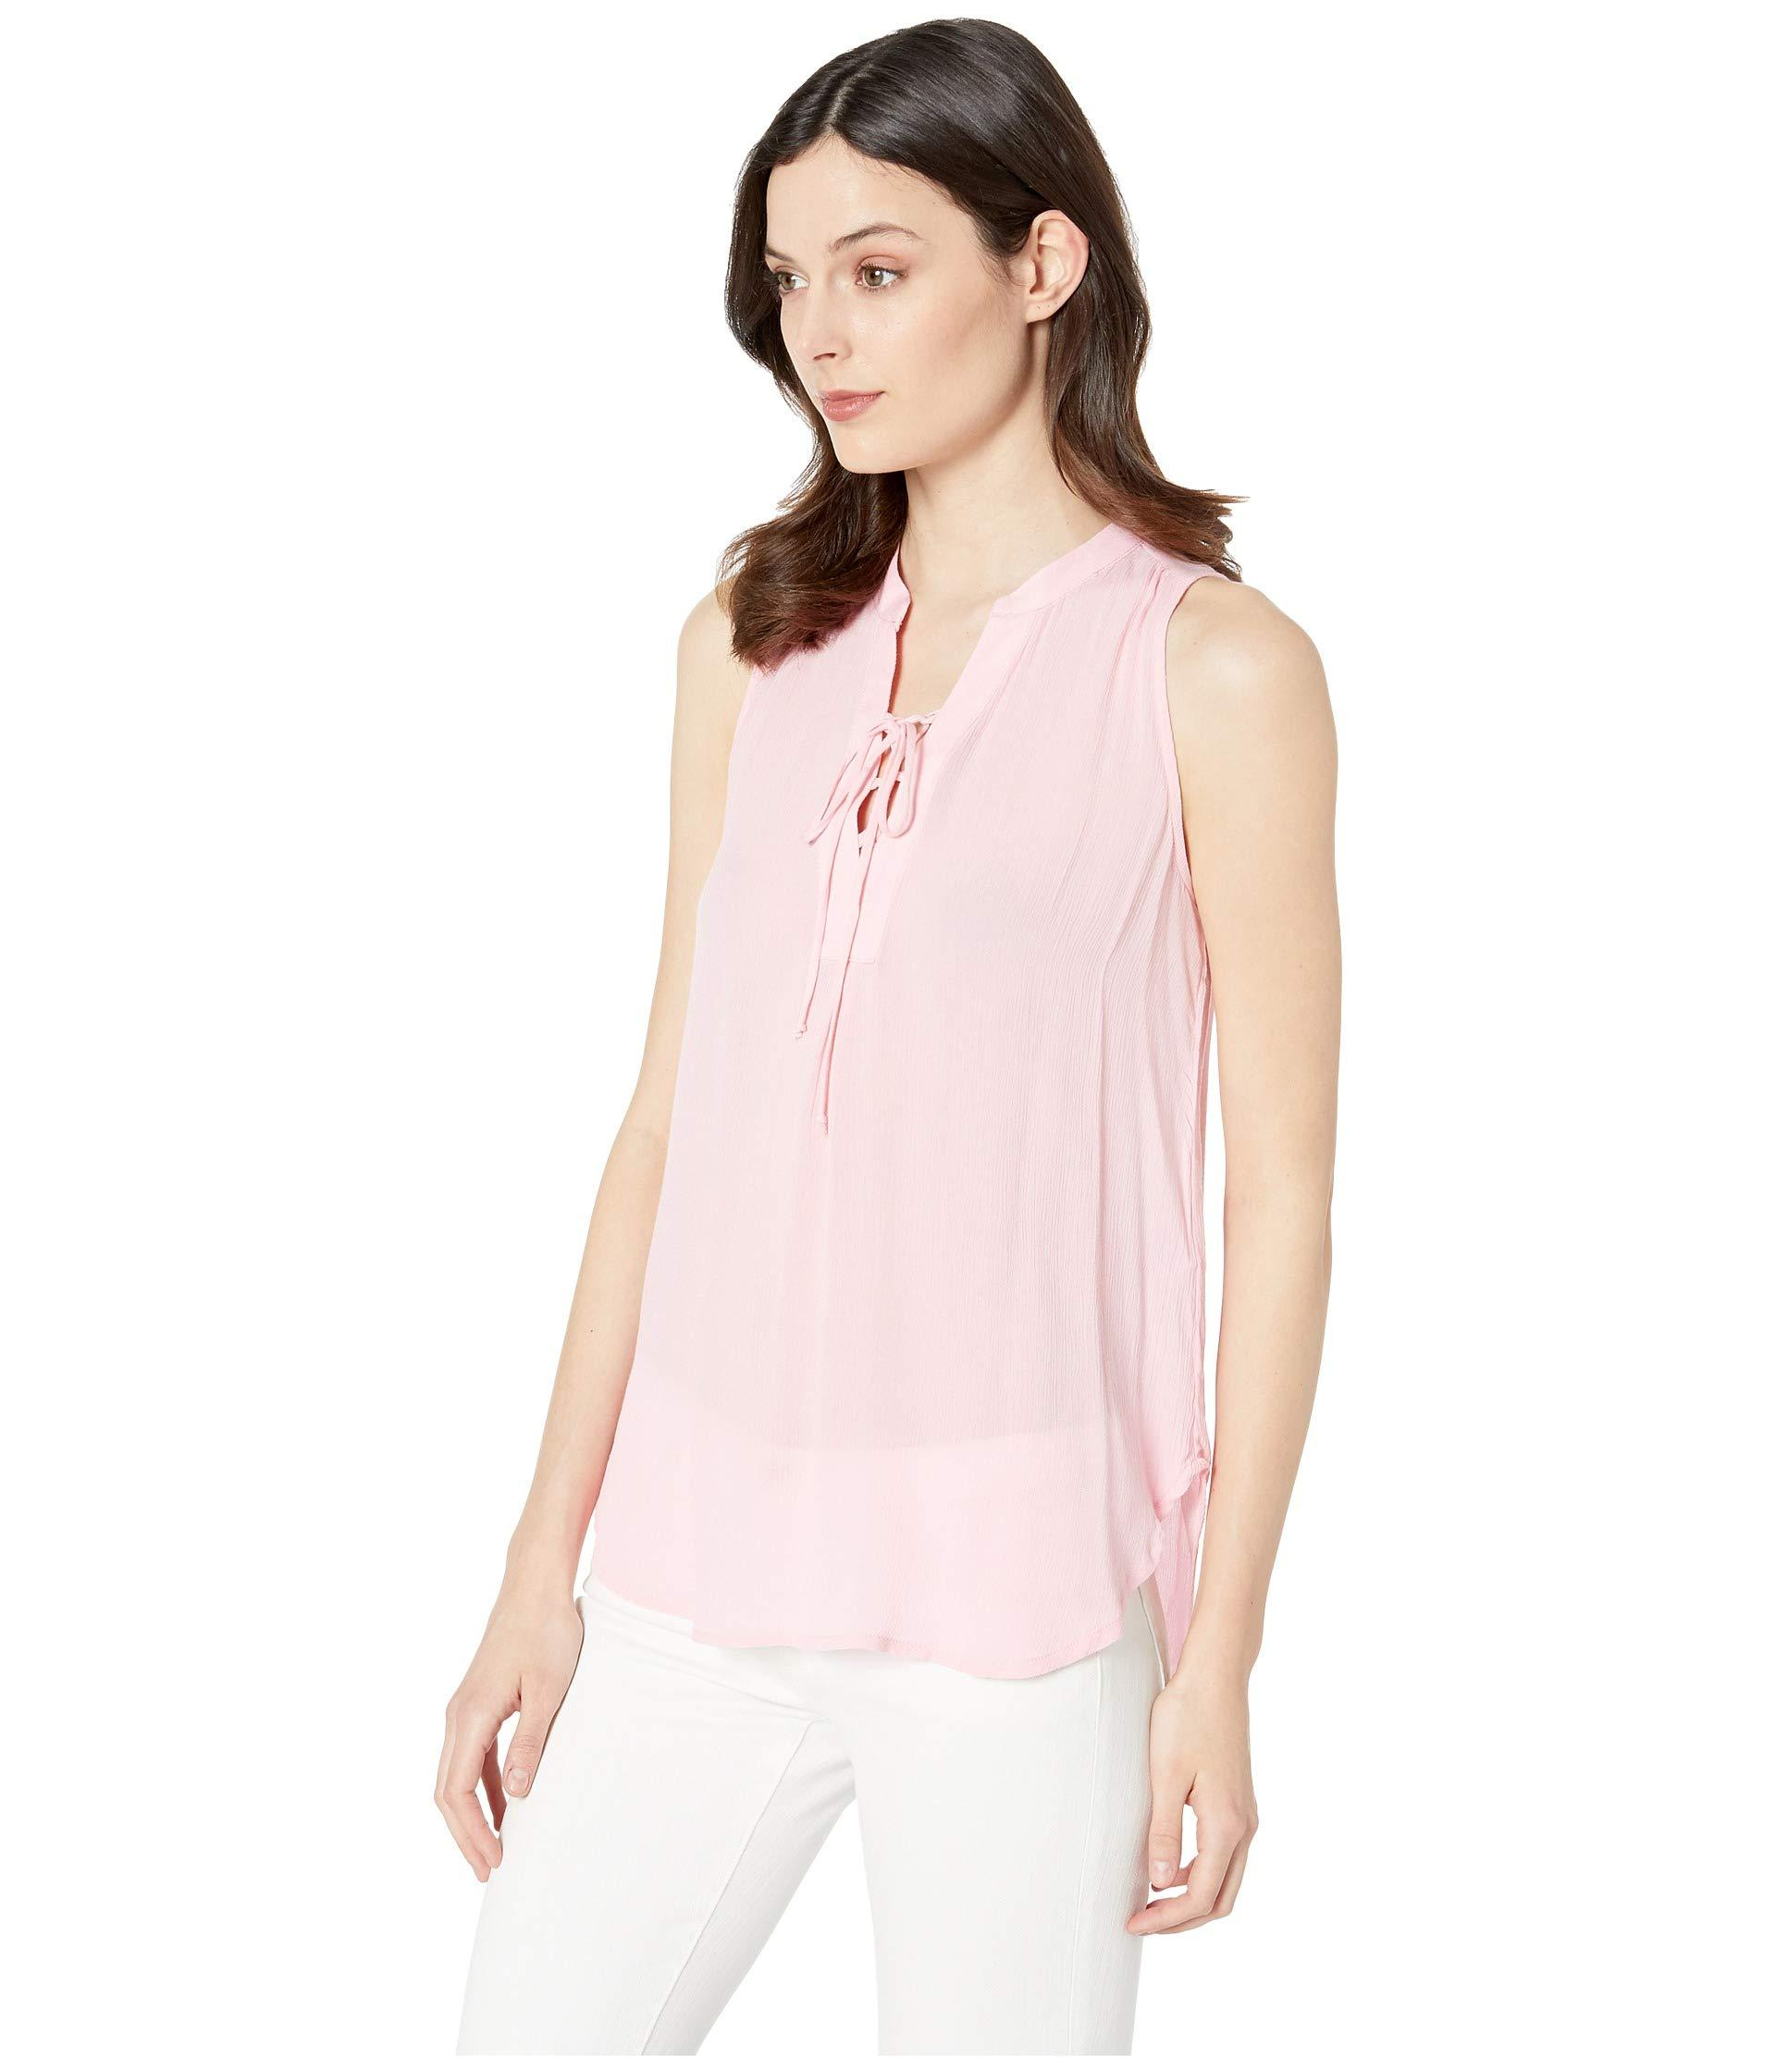 d84d6ecf8fae9 Lyst - Stetson 2912 Textured Rayon Crepe Tank Top (pink) Women s Sleeveless  in Pink